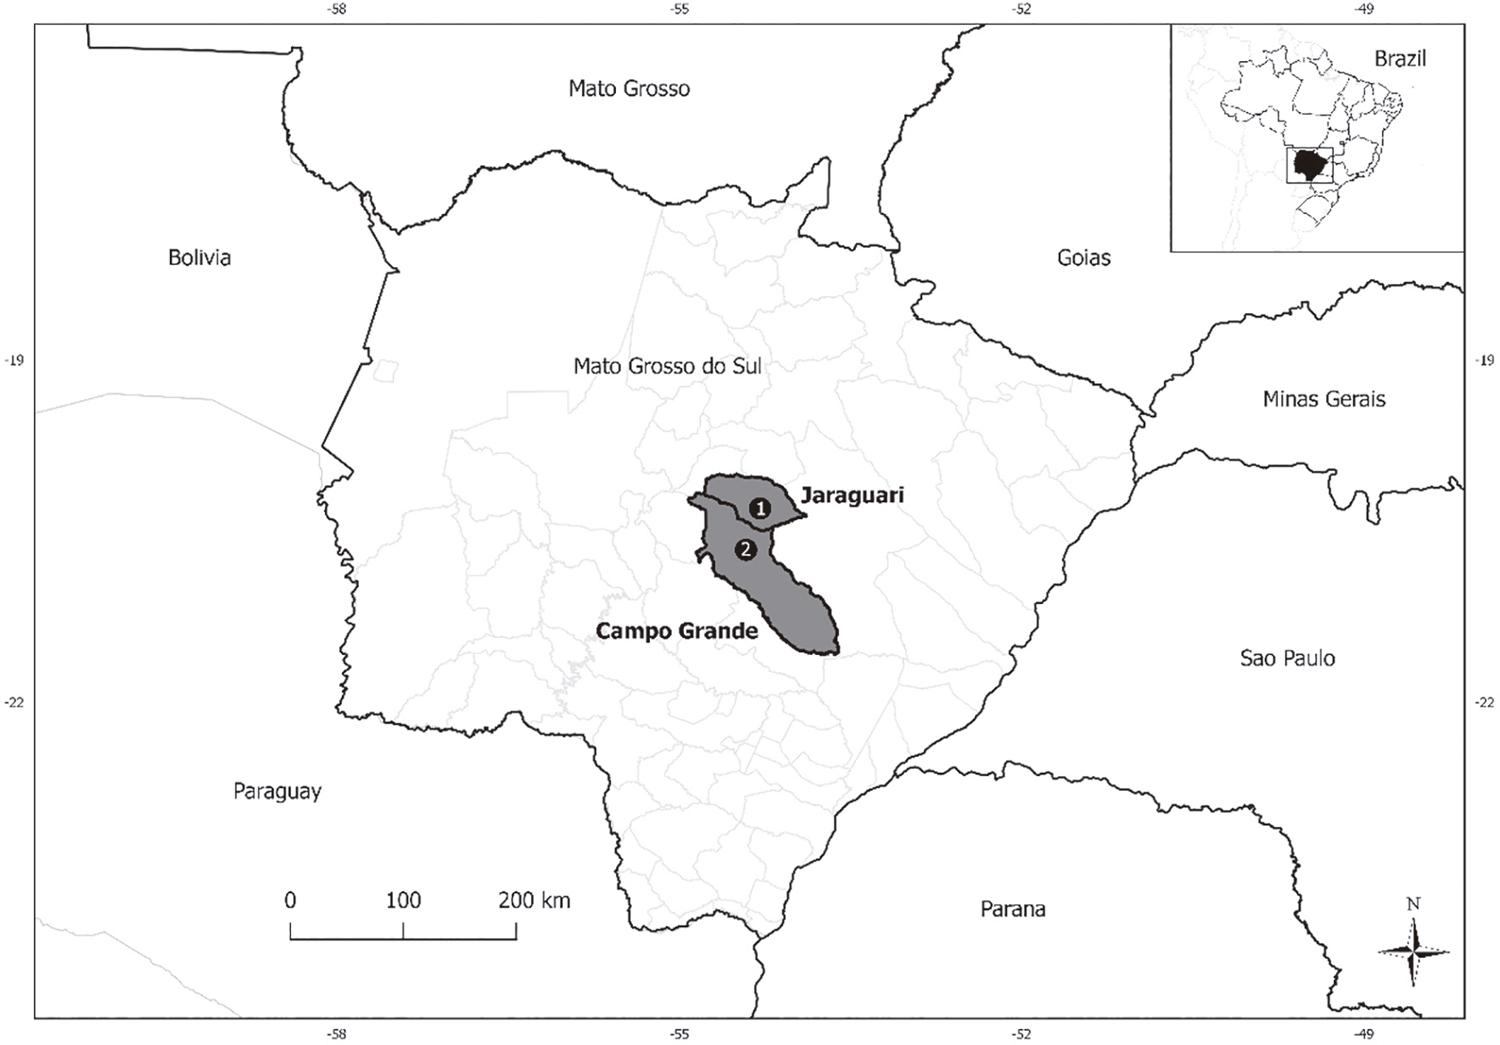 Map of the studied quilombola communities regarding hantavirus and arenavirus IgG antibodies: 1) Furnas dos Dionisios; 2) Sao Benedito.